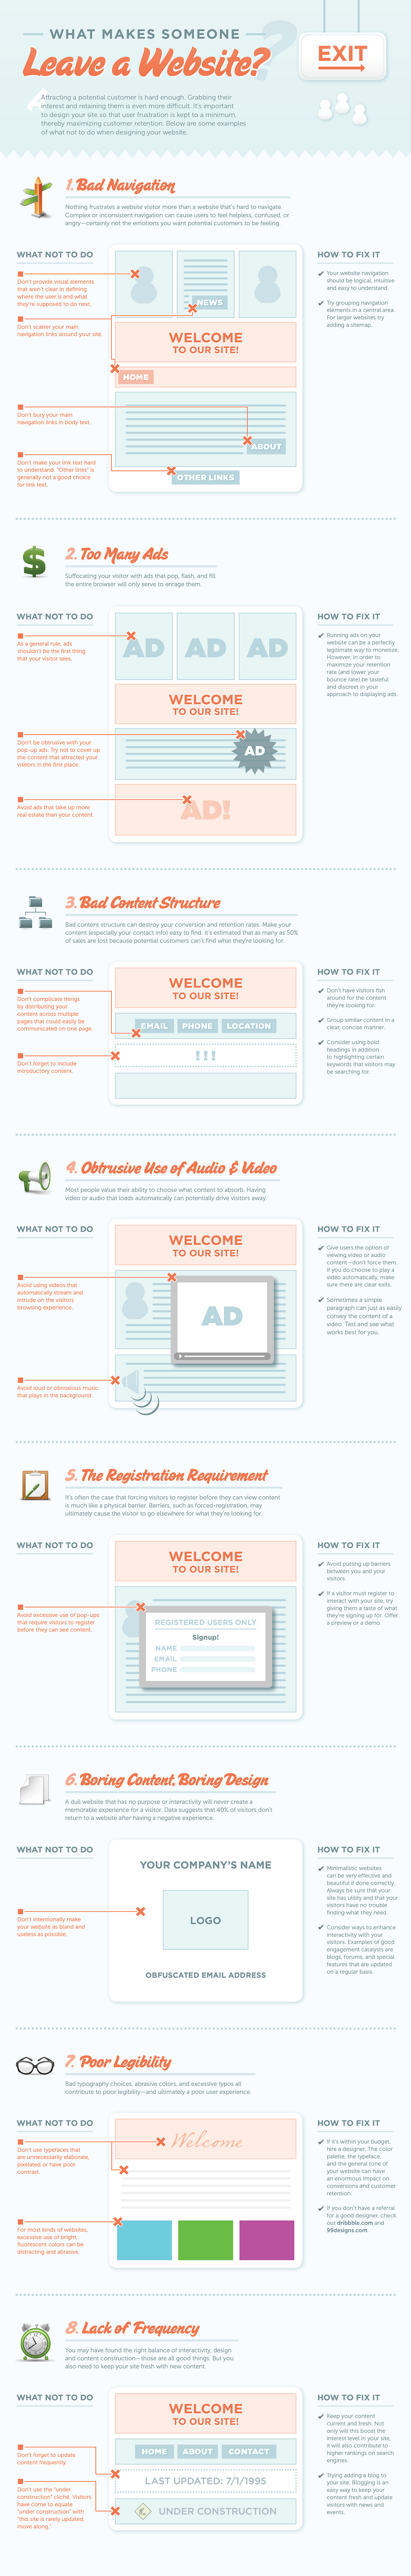 The Anatomy of Web Design : Why Someone Leave your Website ...